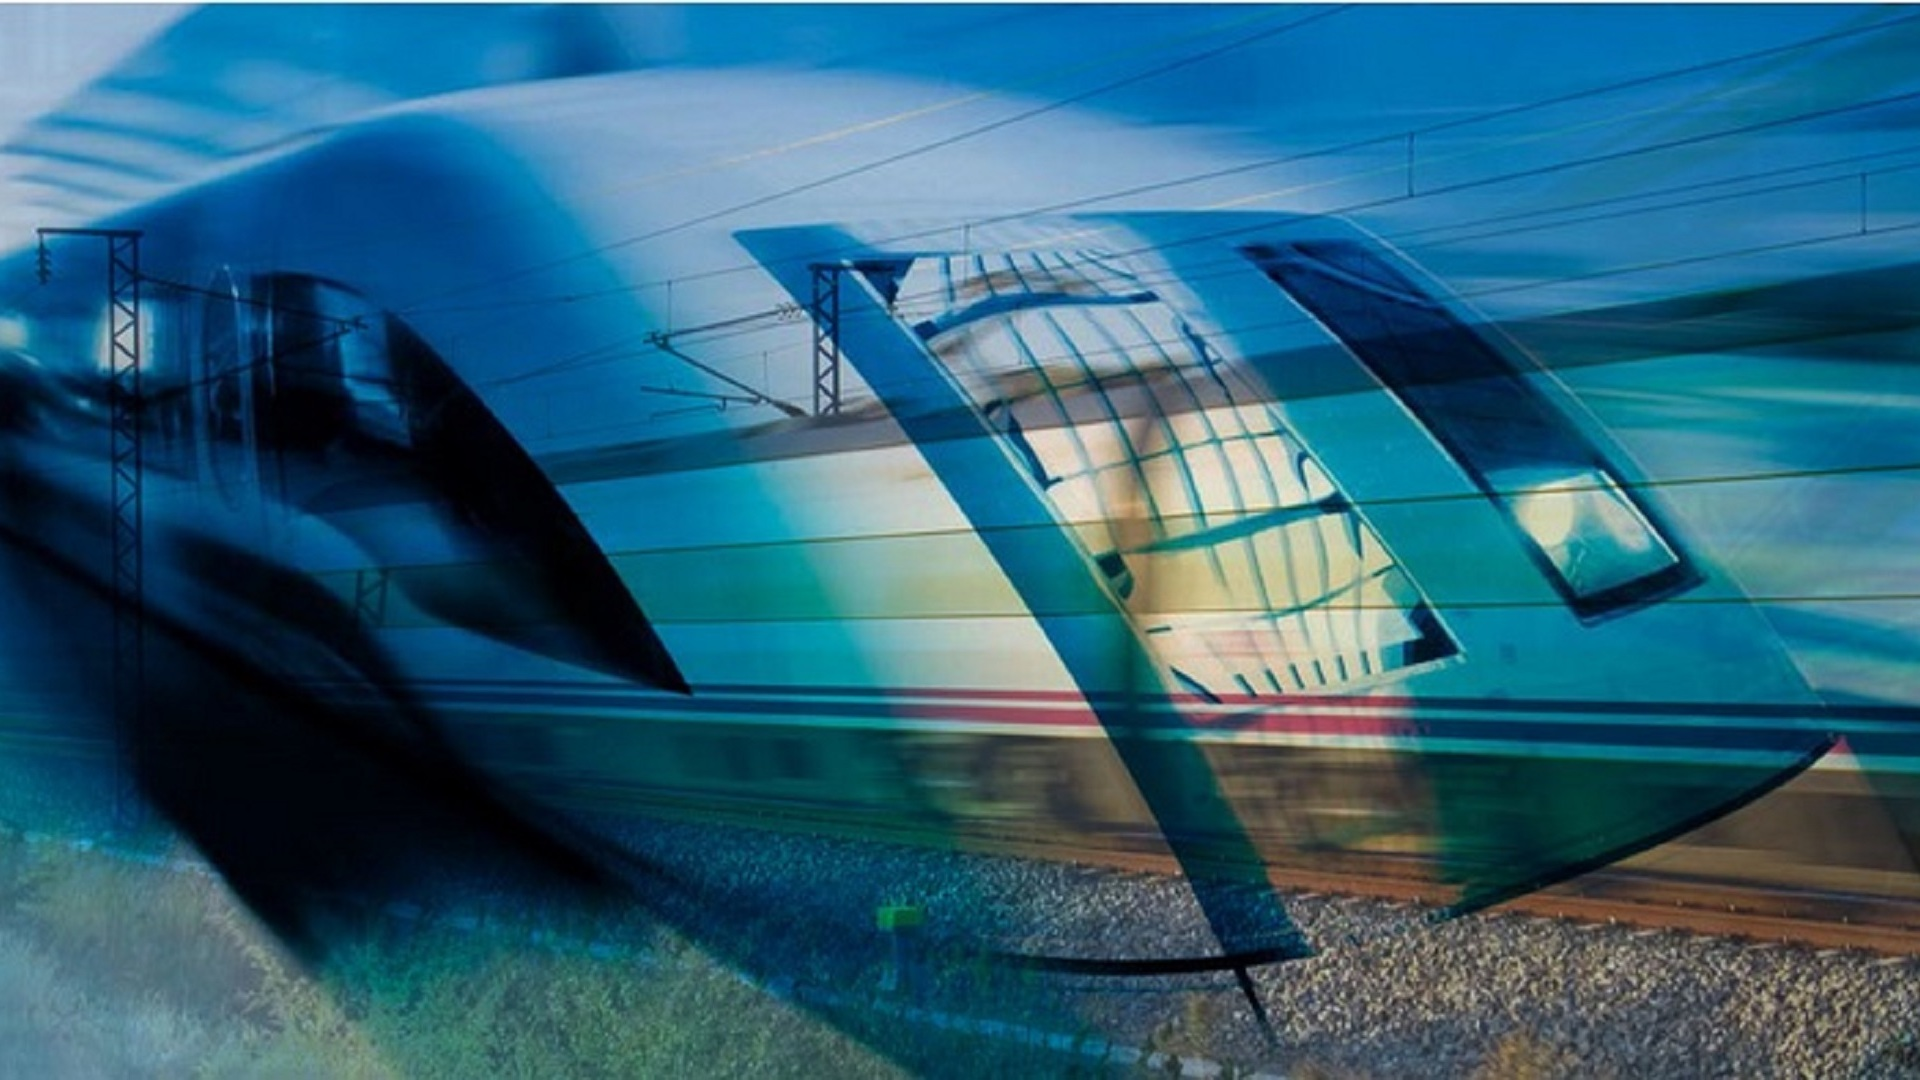 New challenges for the Rail Transport sector